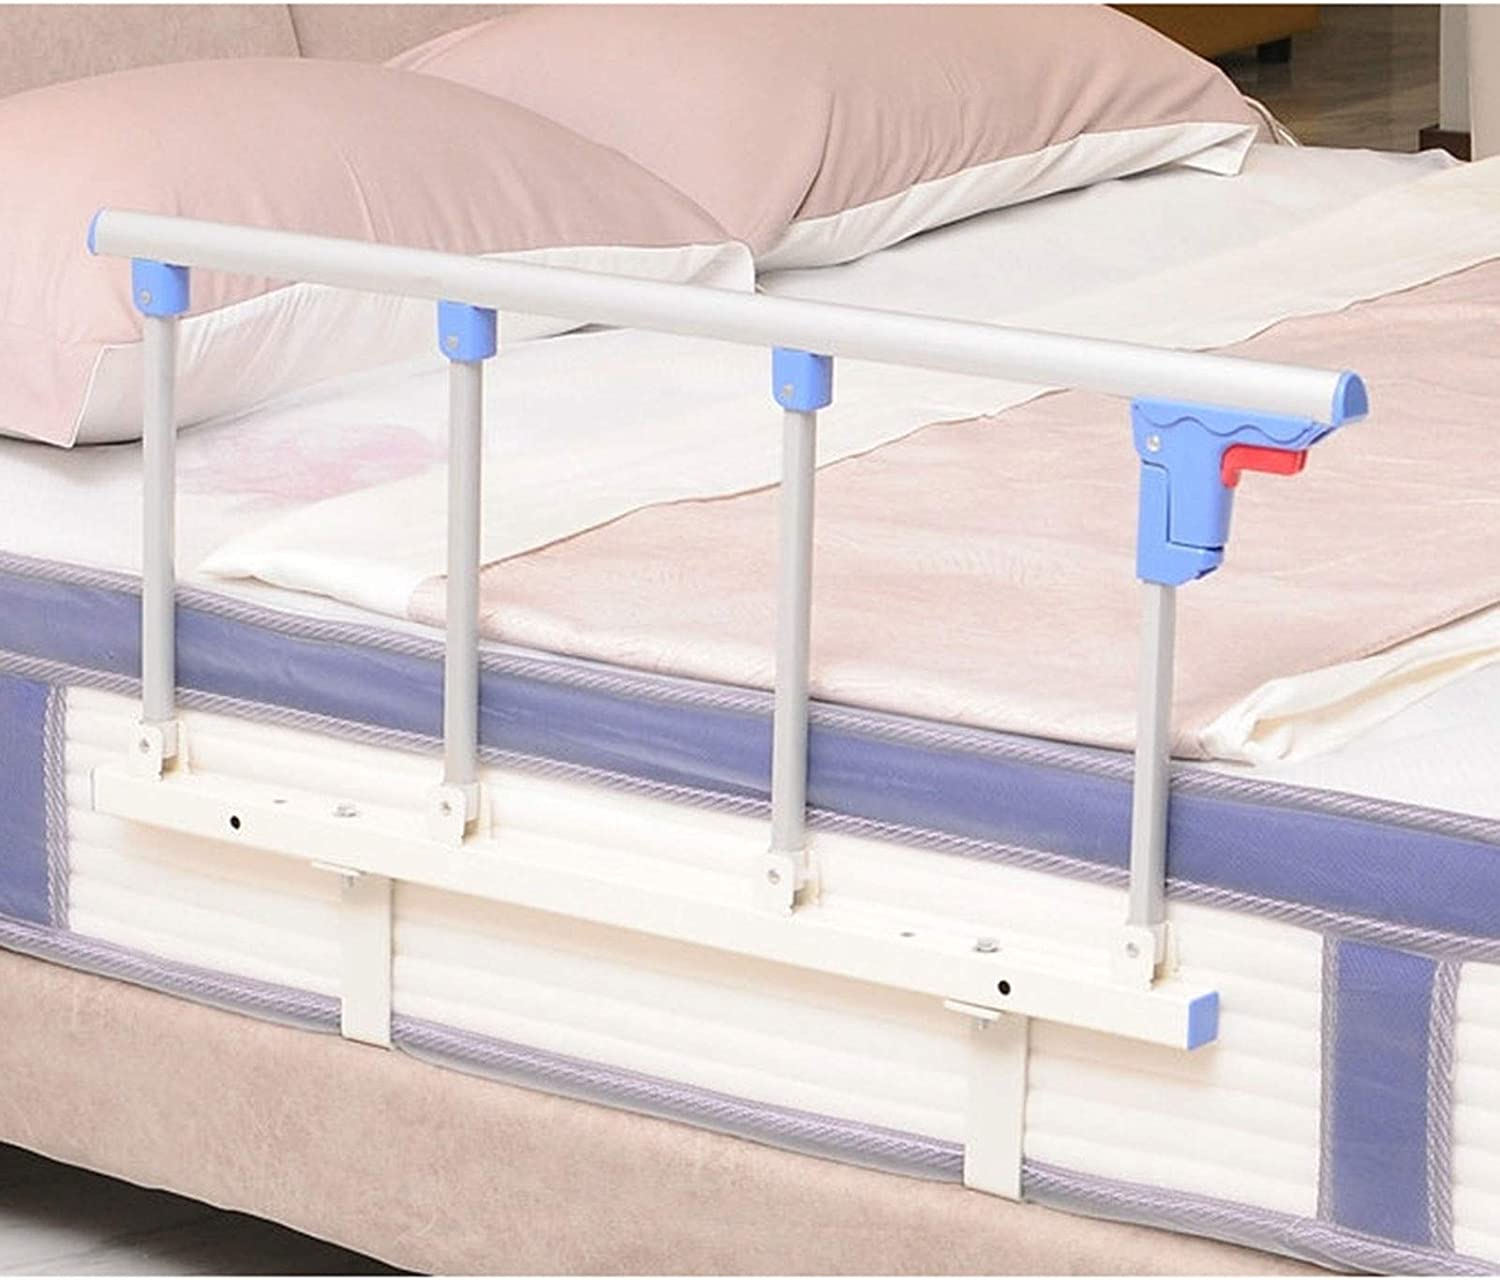 BETTKEN Elderly Limited price Bed Popular brand Rail Safety Handle Railing for Assist Ad